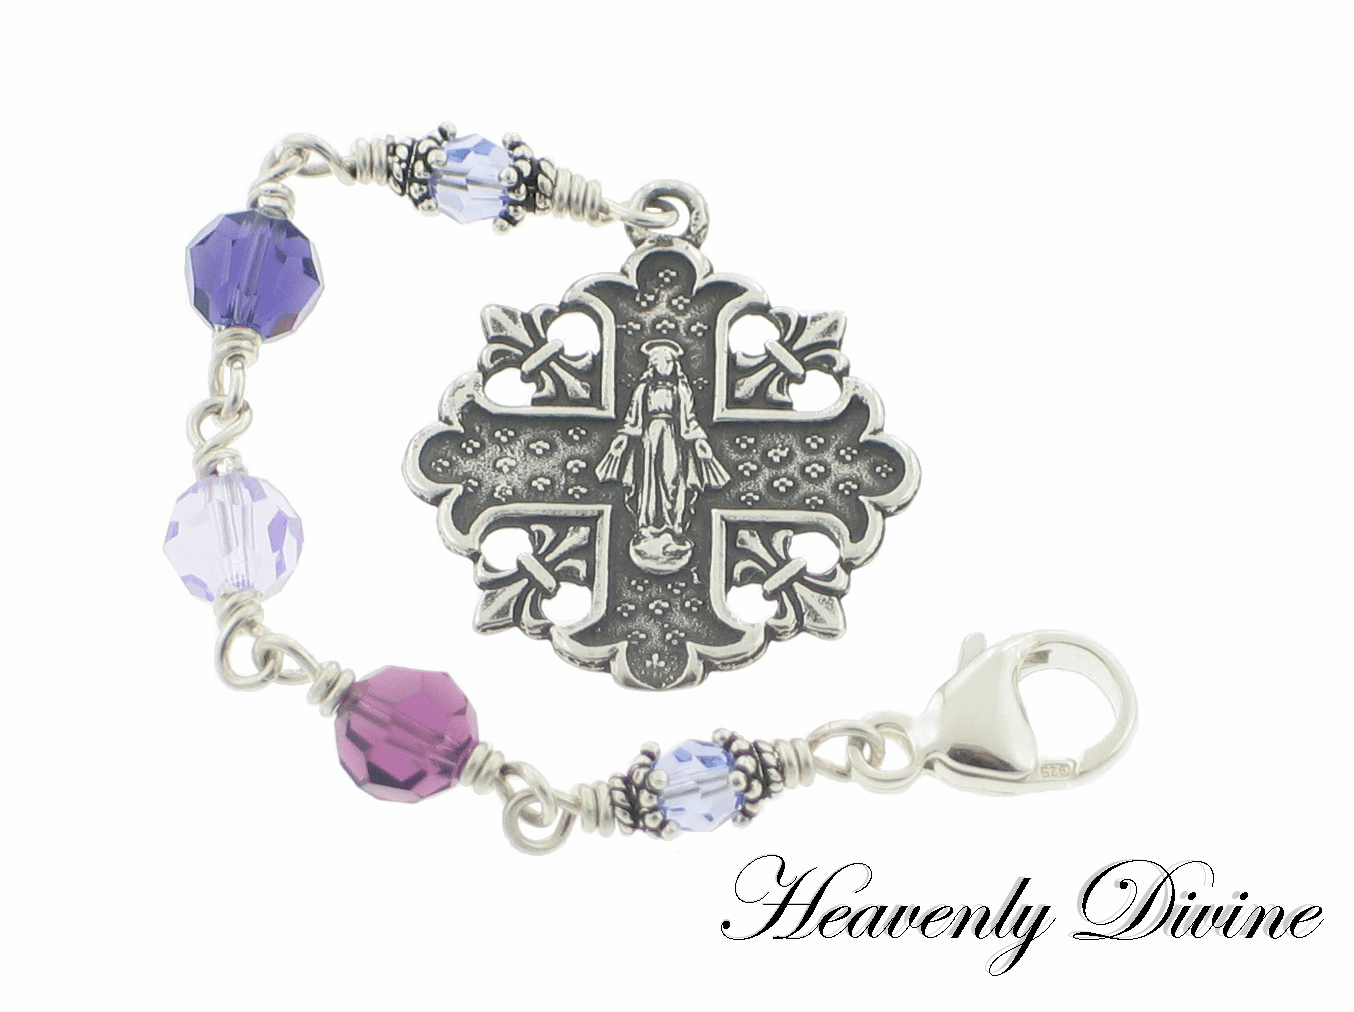 Swarovski Crystal Handmade Three Hail Mary Devotional Chaplets by Heavenly Divine